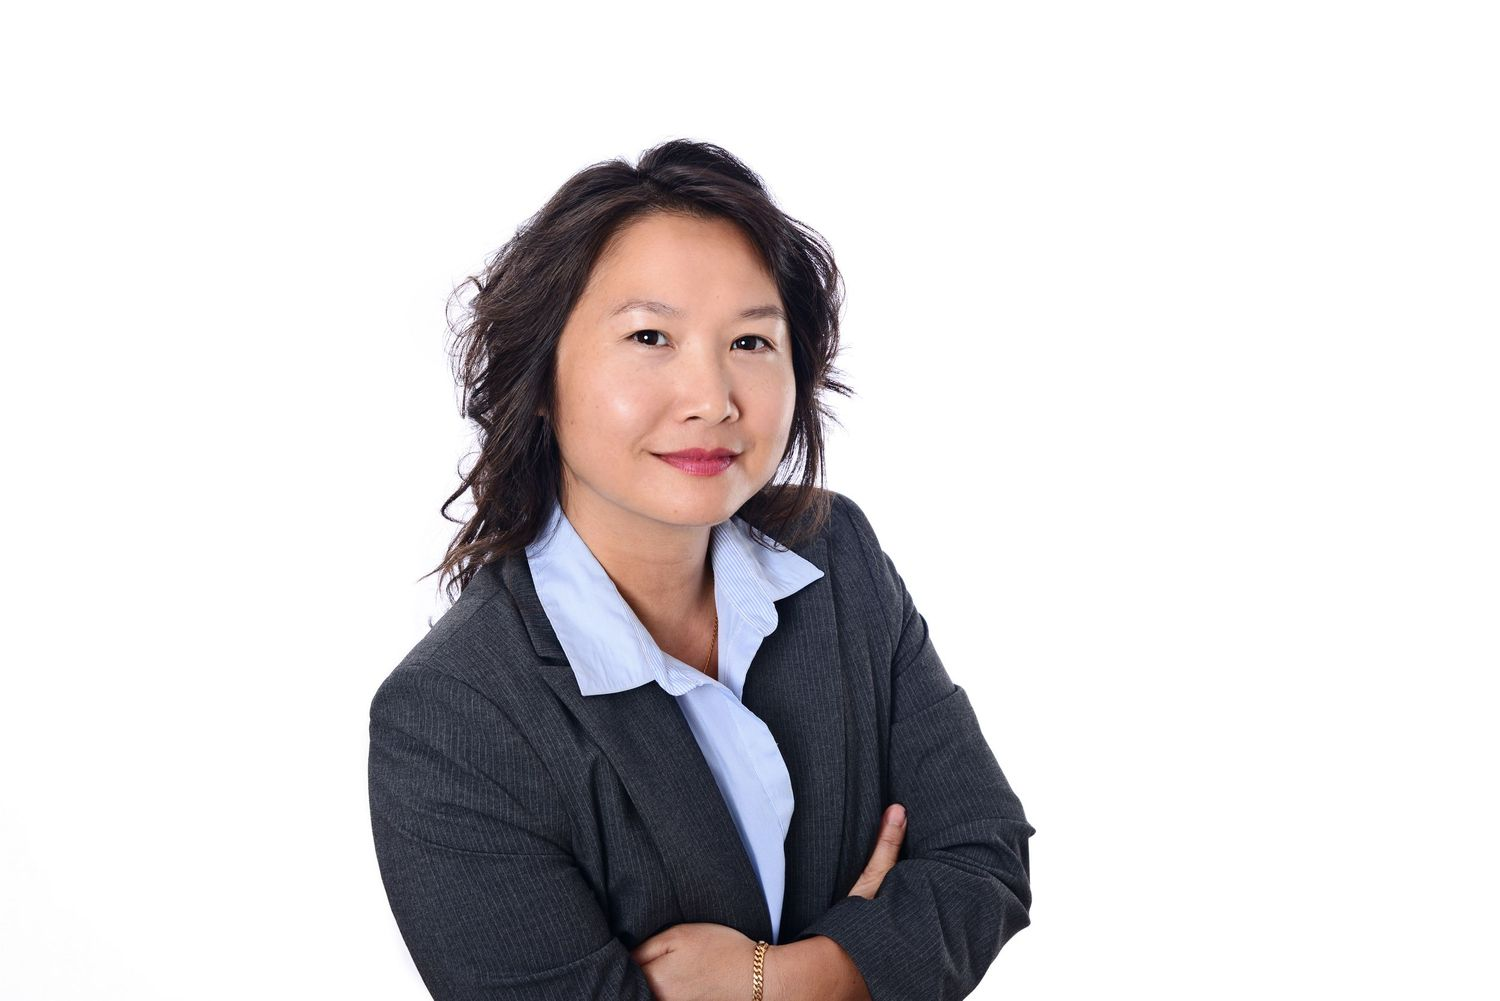 White background corporate headshot